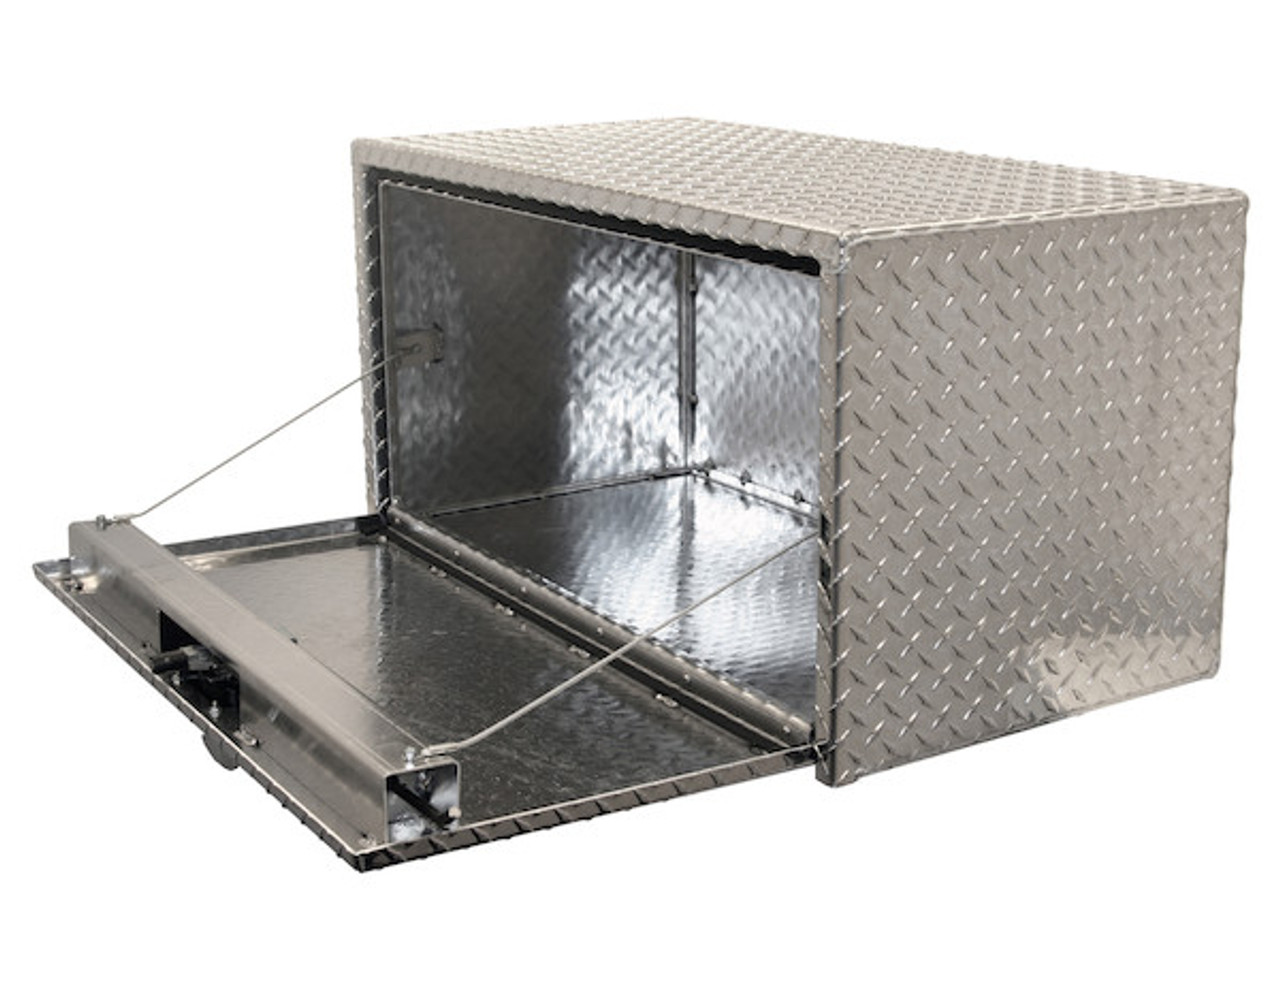 "1735100 BUYERS PRODUCTS DIAMOND TREAD ALUMINUM UNDERBODY TRUCK BOX WITH 3-PT. LATCH TOOLBOX 18""Hx18""Dx24""W"